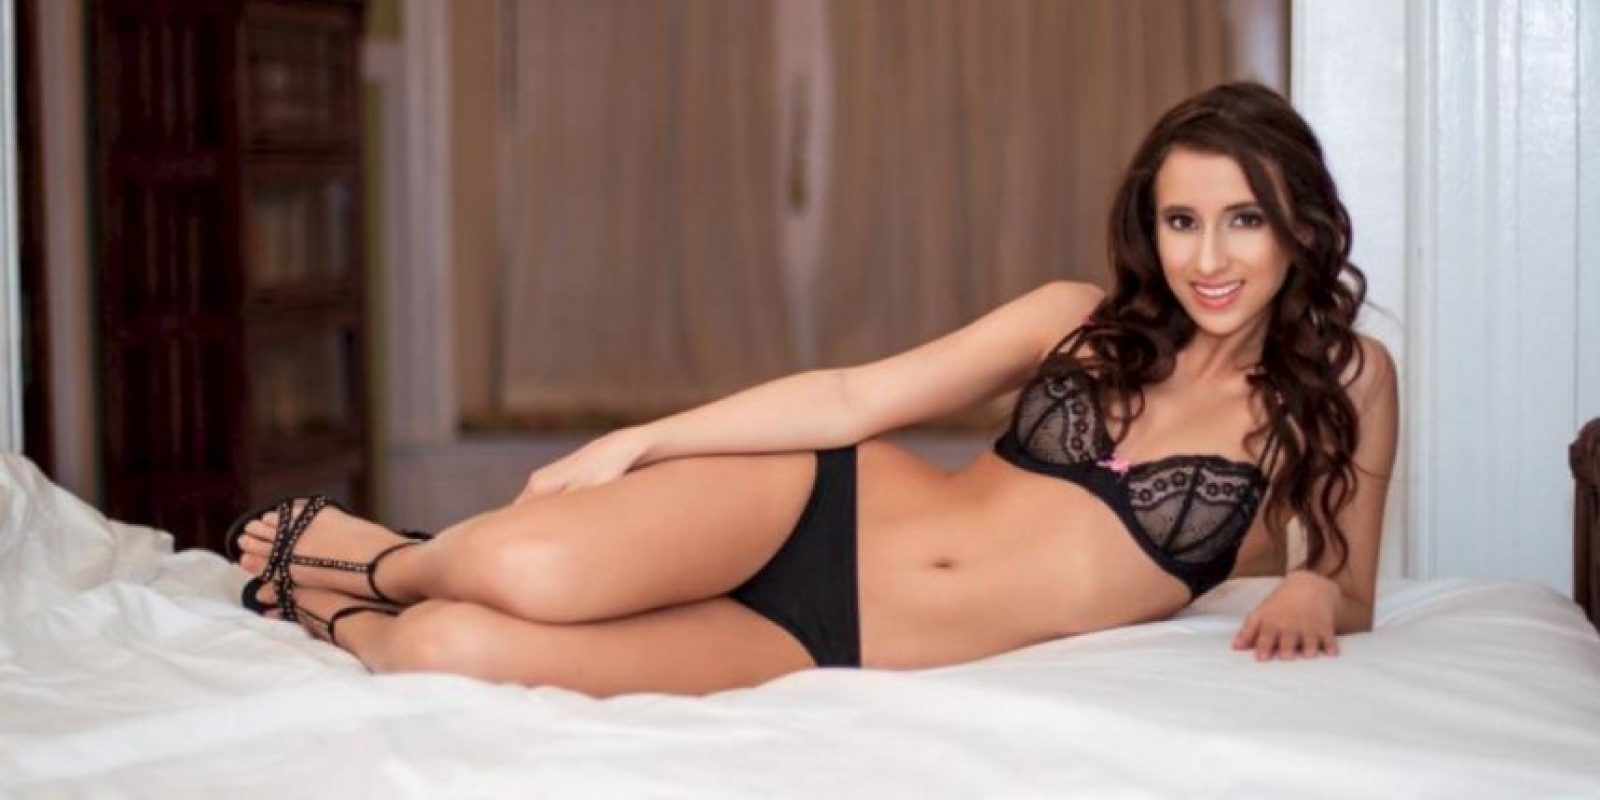 belle knox: la estrella porno universitaria ya tiene su documental